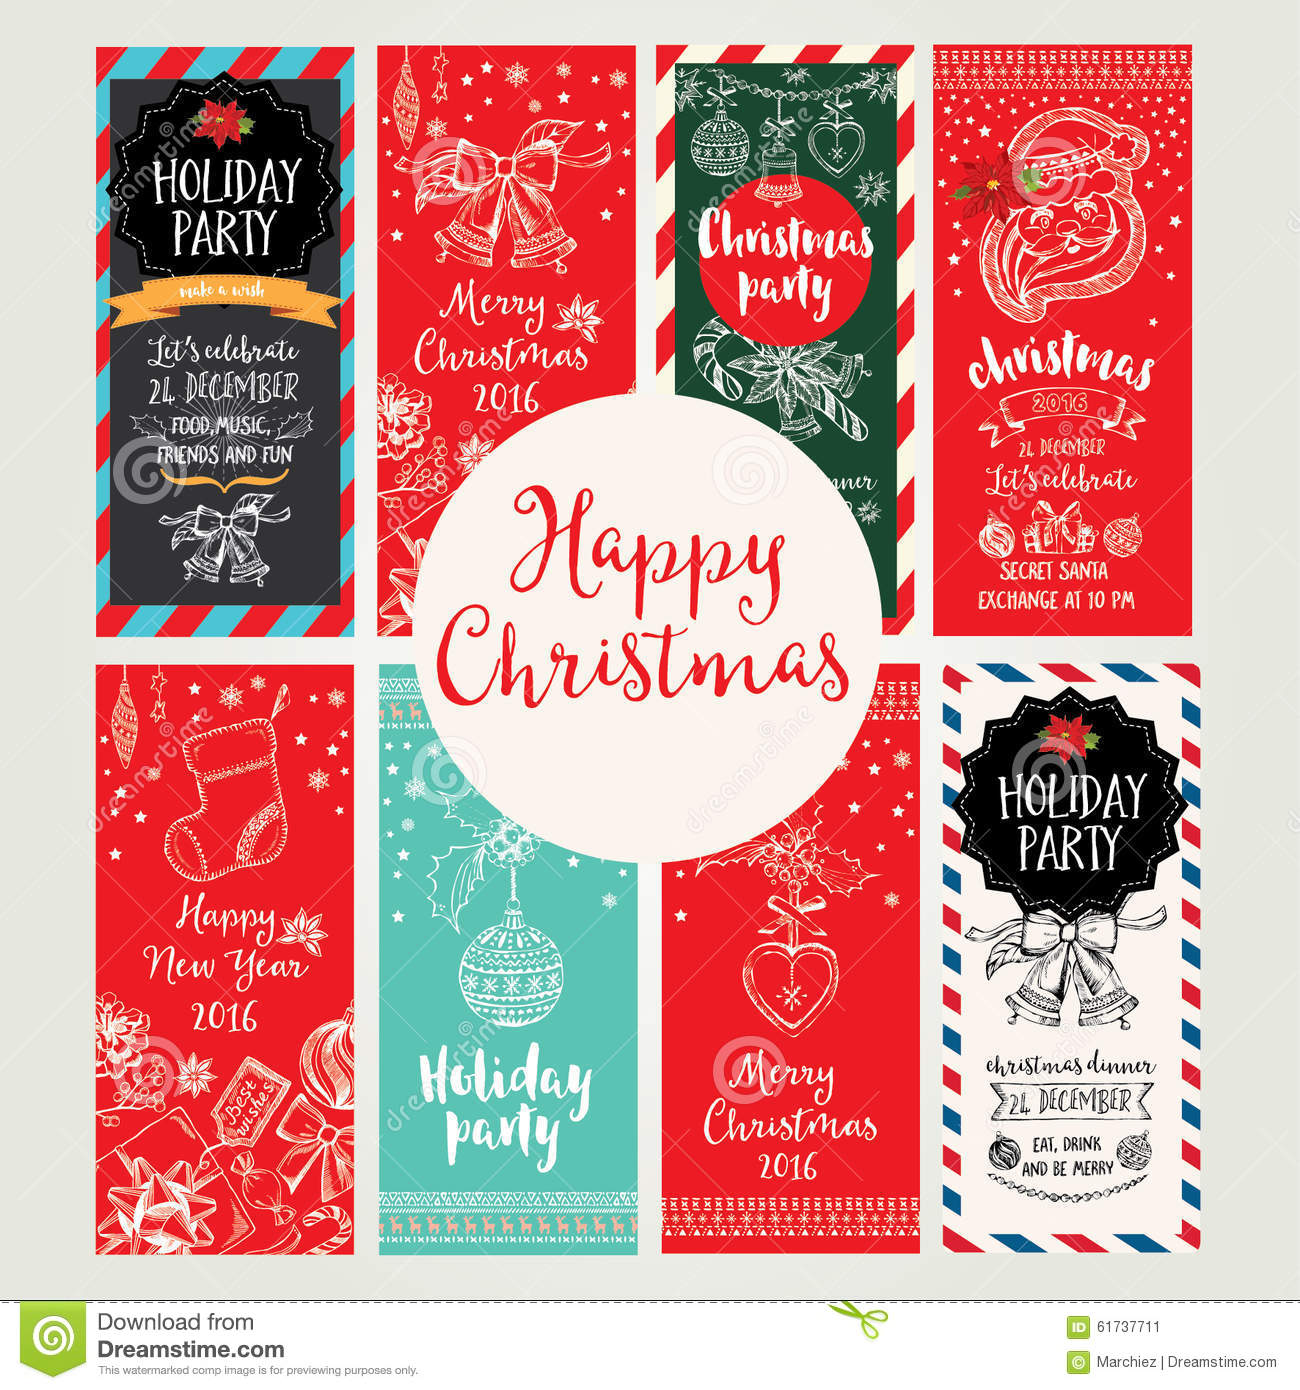 Christmas Party Invitation Holiday Card Vector Image – Christmas Party Invitation Card